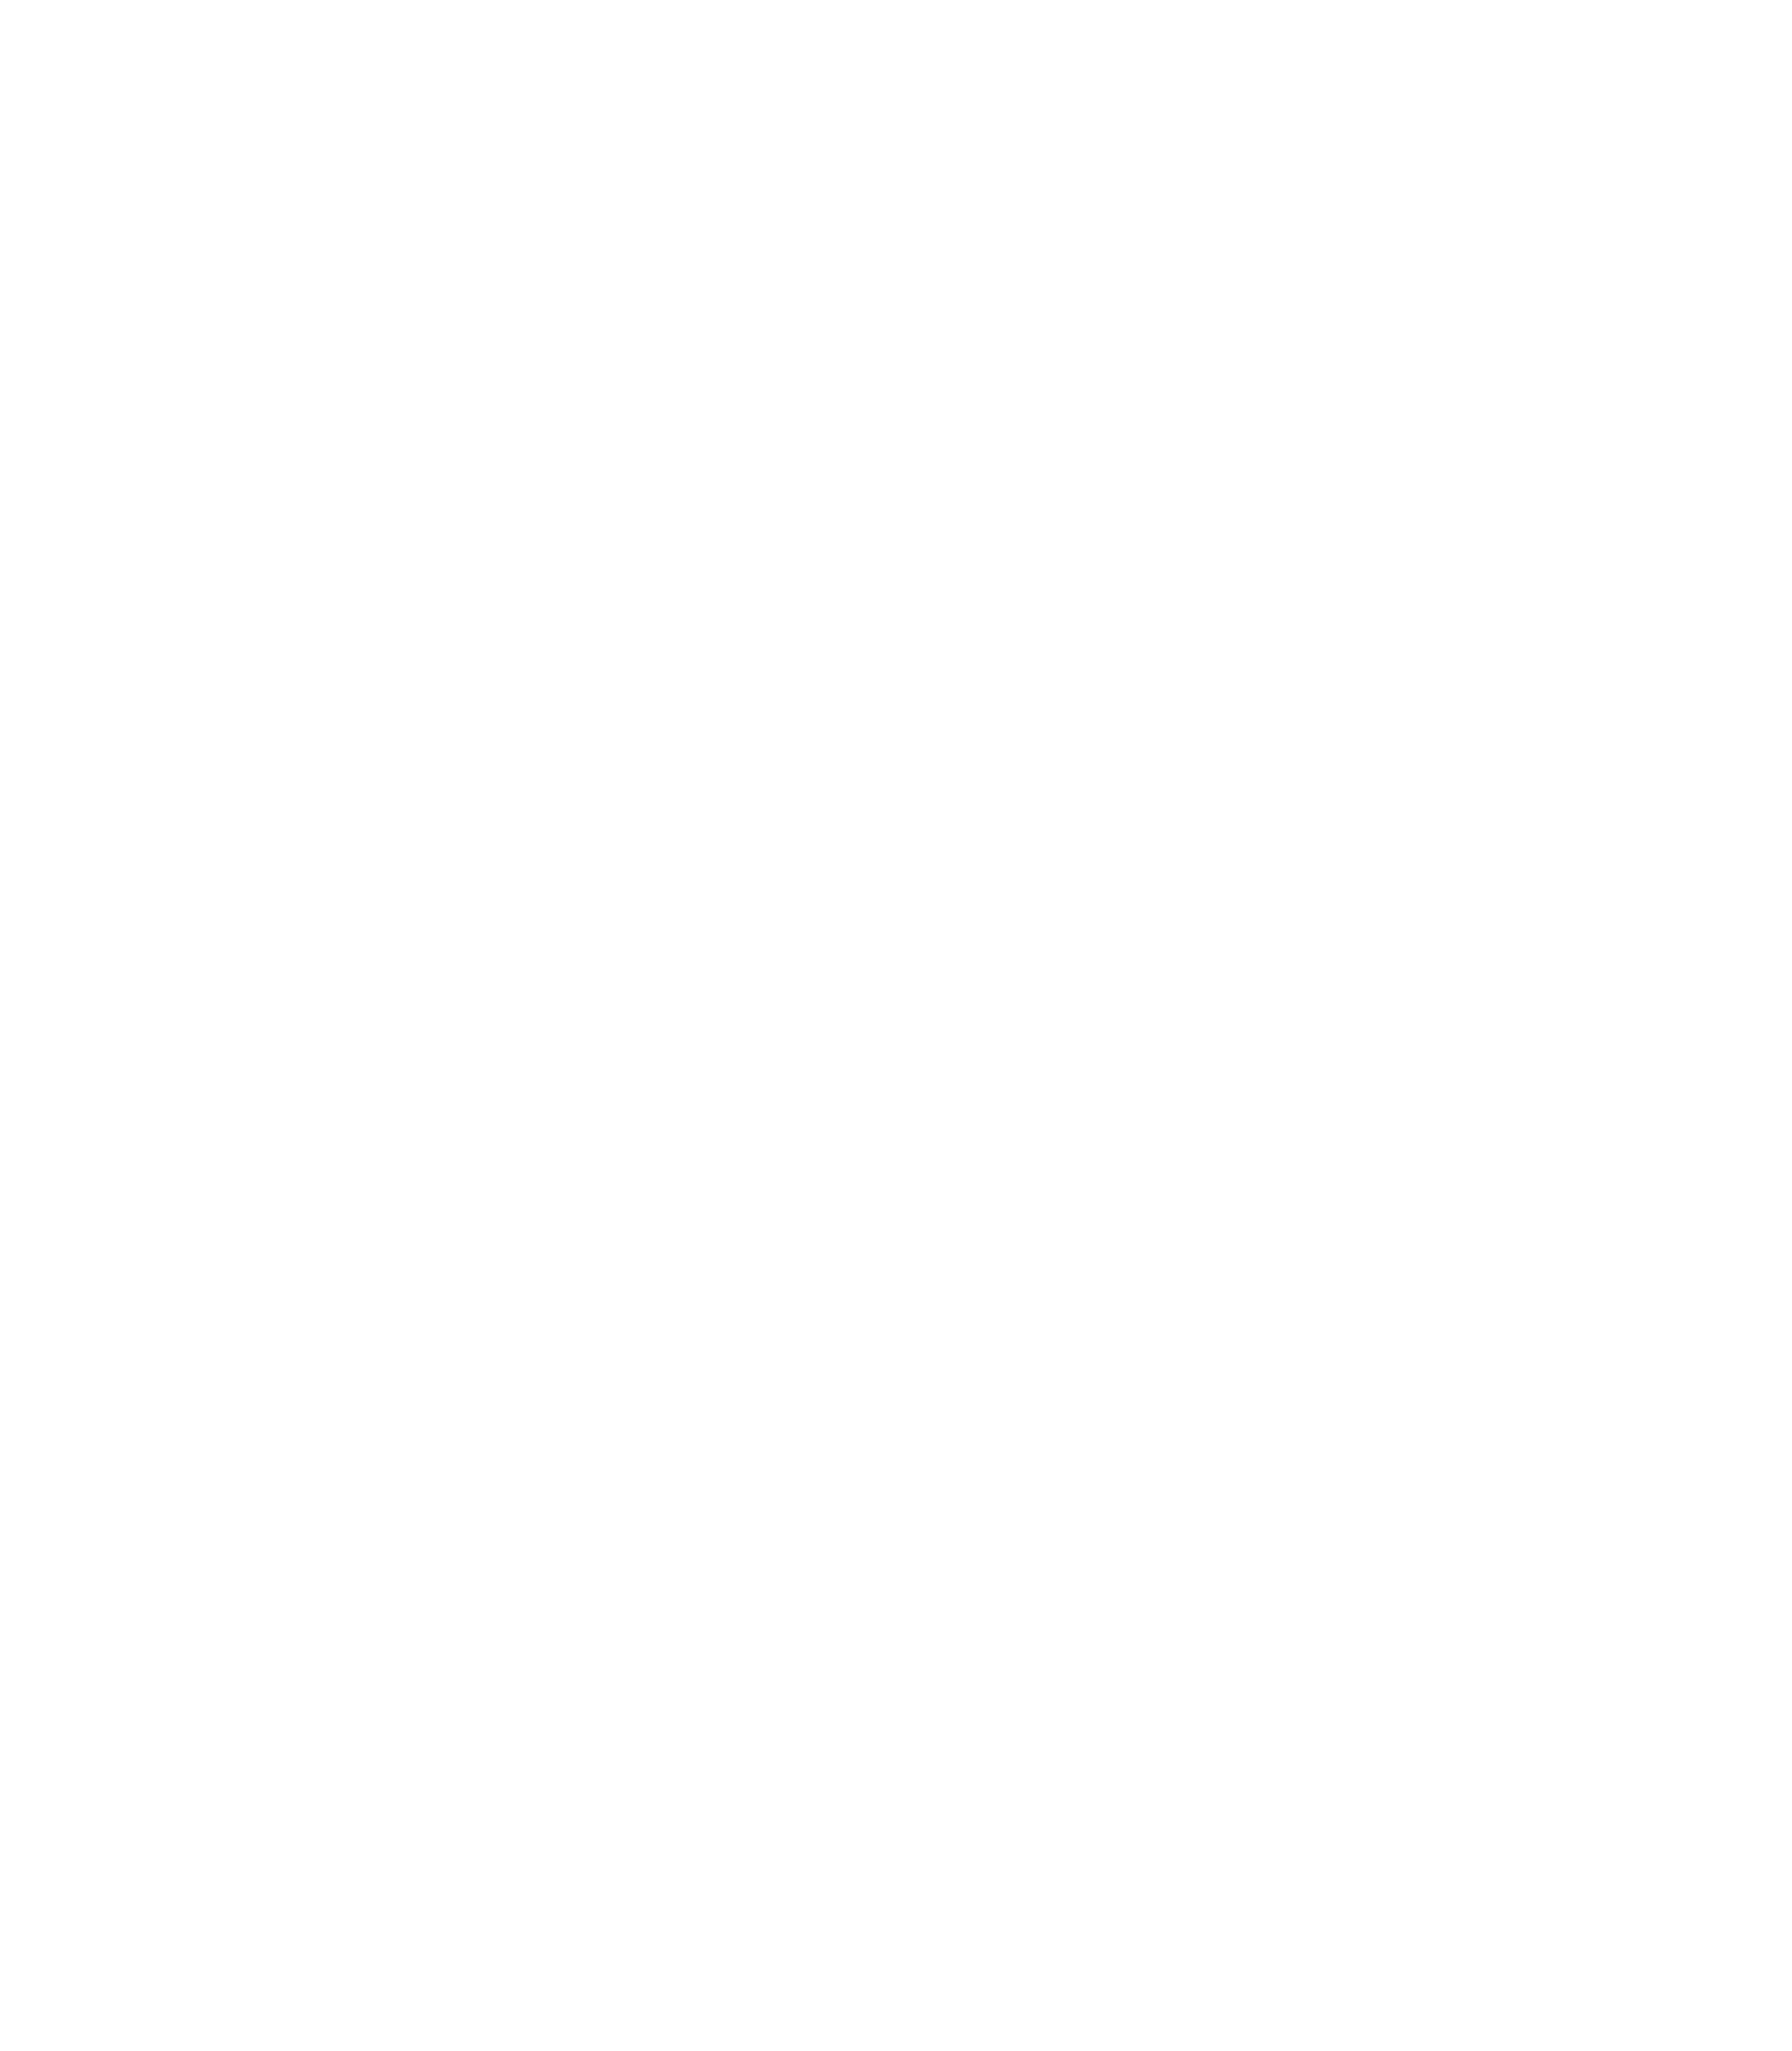 Download Discord Logo Black And White White Photo For Instagram Png Image With No Background Pngkey Com